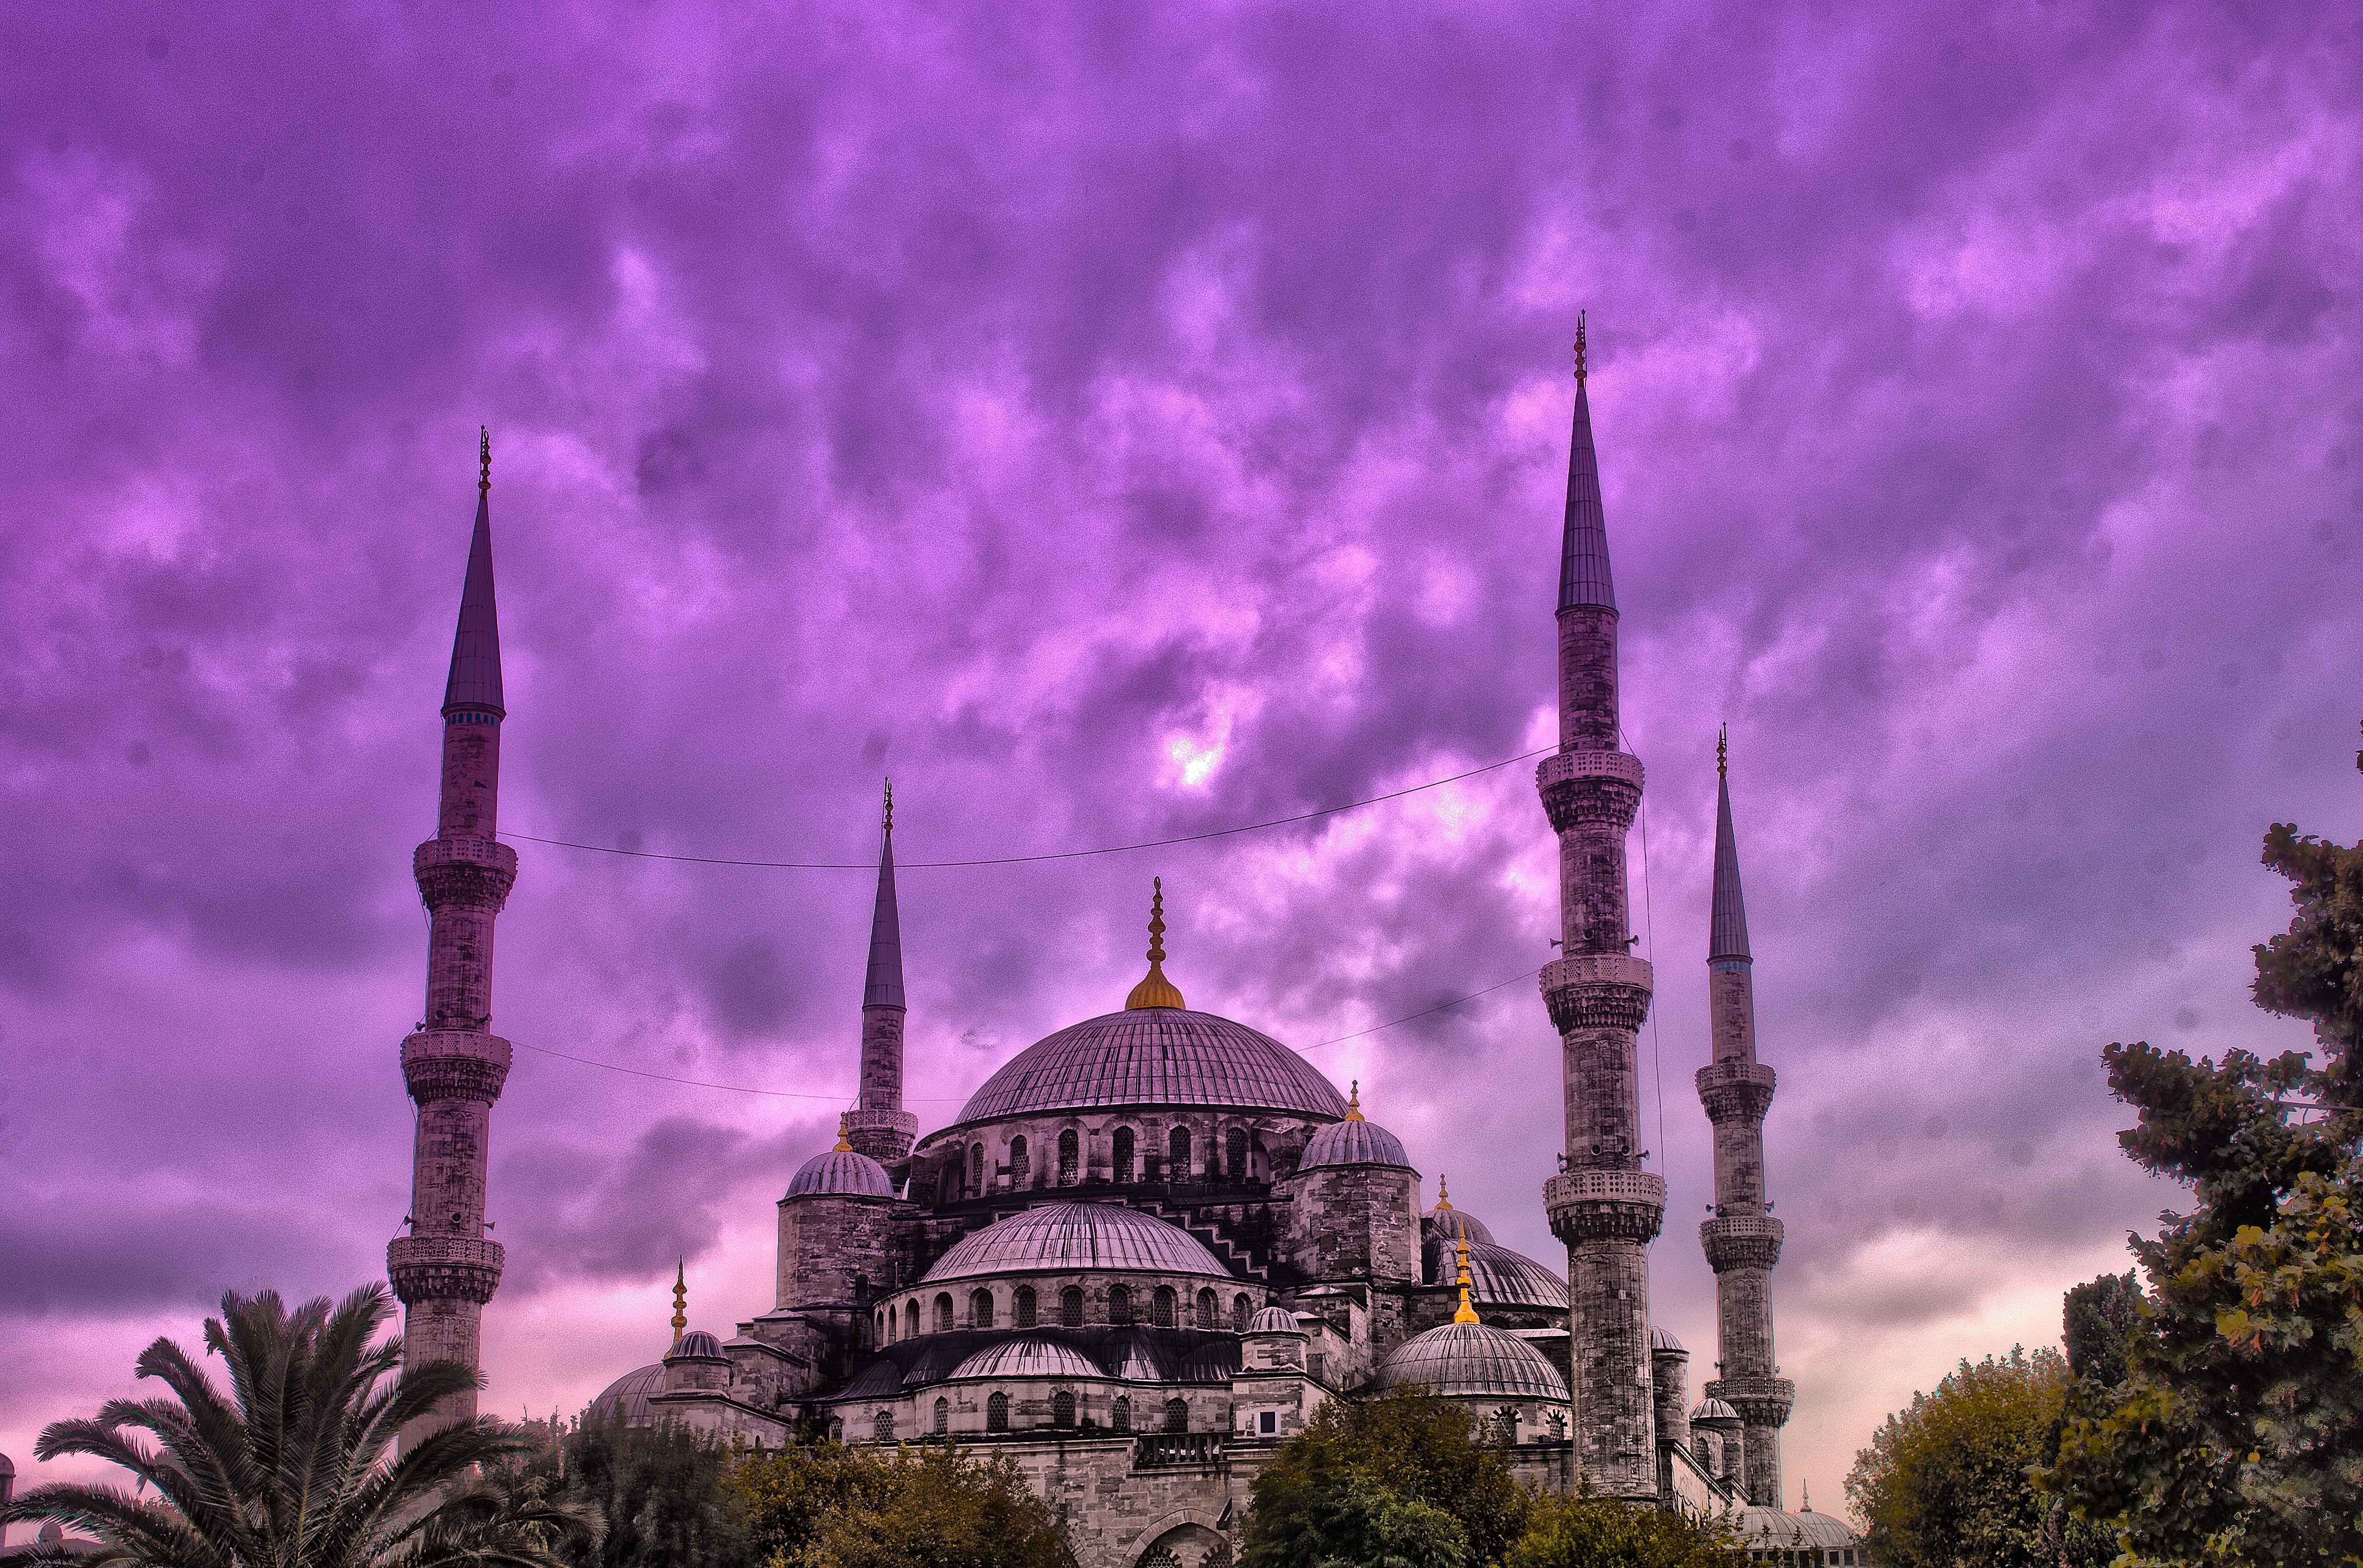 File:Sultan Ahmet Camii (Blue Mosque) HDR.jpg - Wikimedia Commons